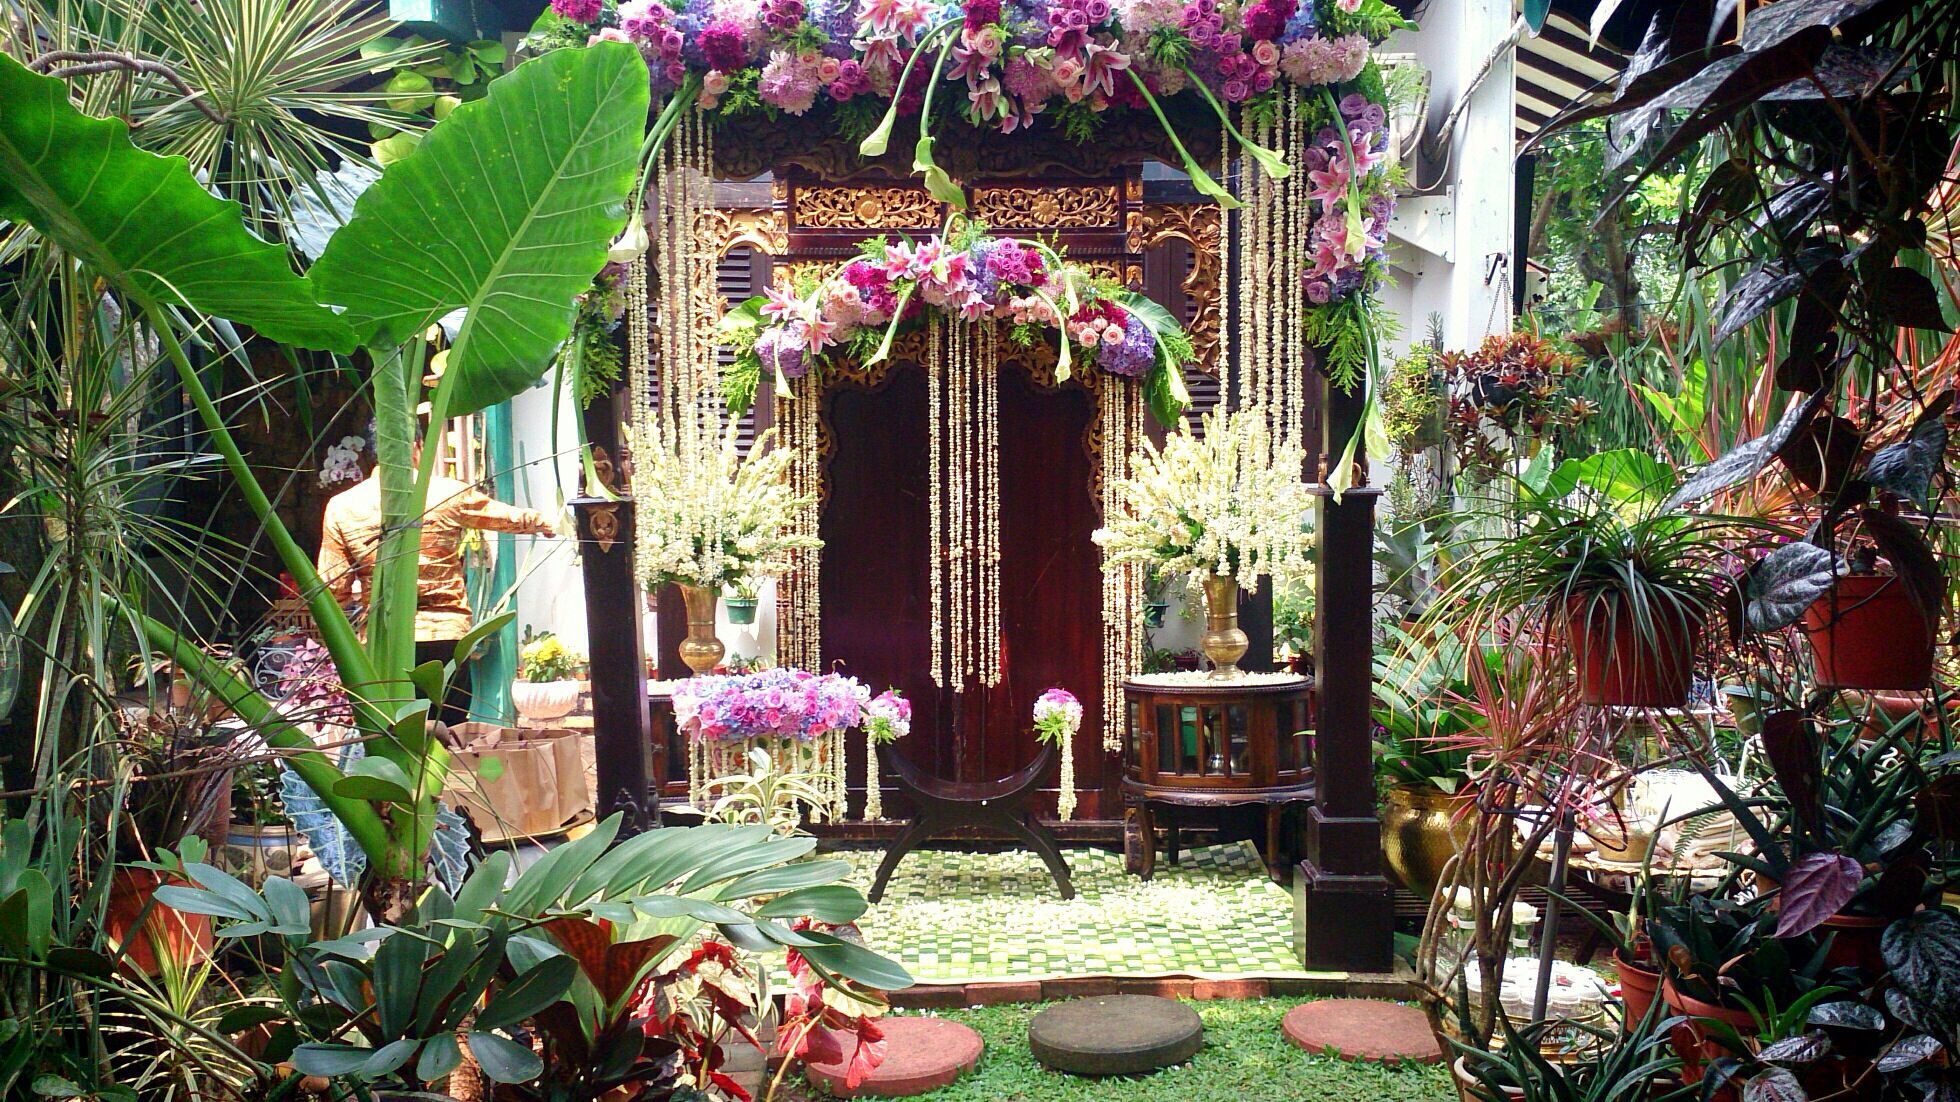 Garden wedding stage decoration  Dekorasi siraman  decoration  Pinterest  Javanese Wedding stage